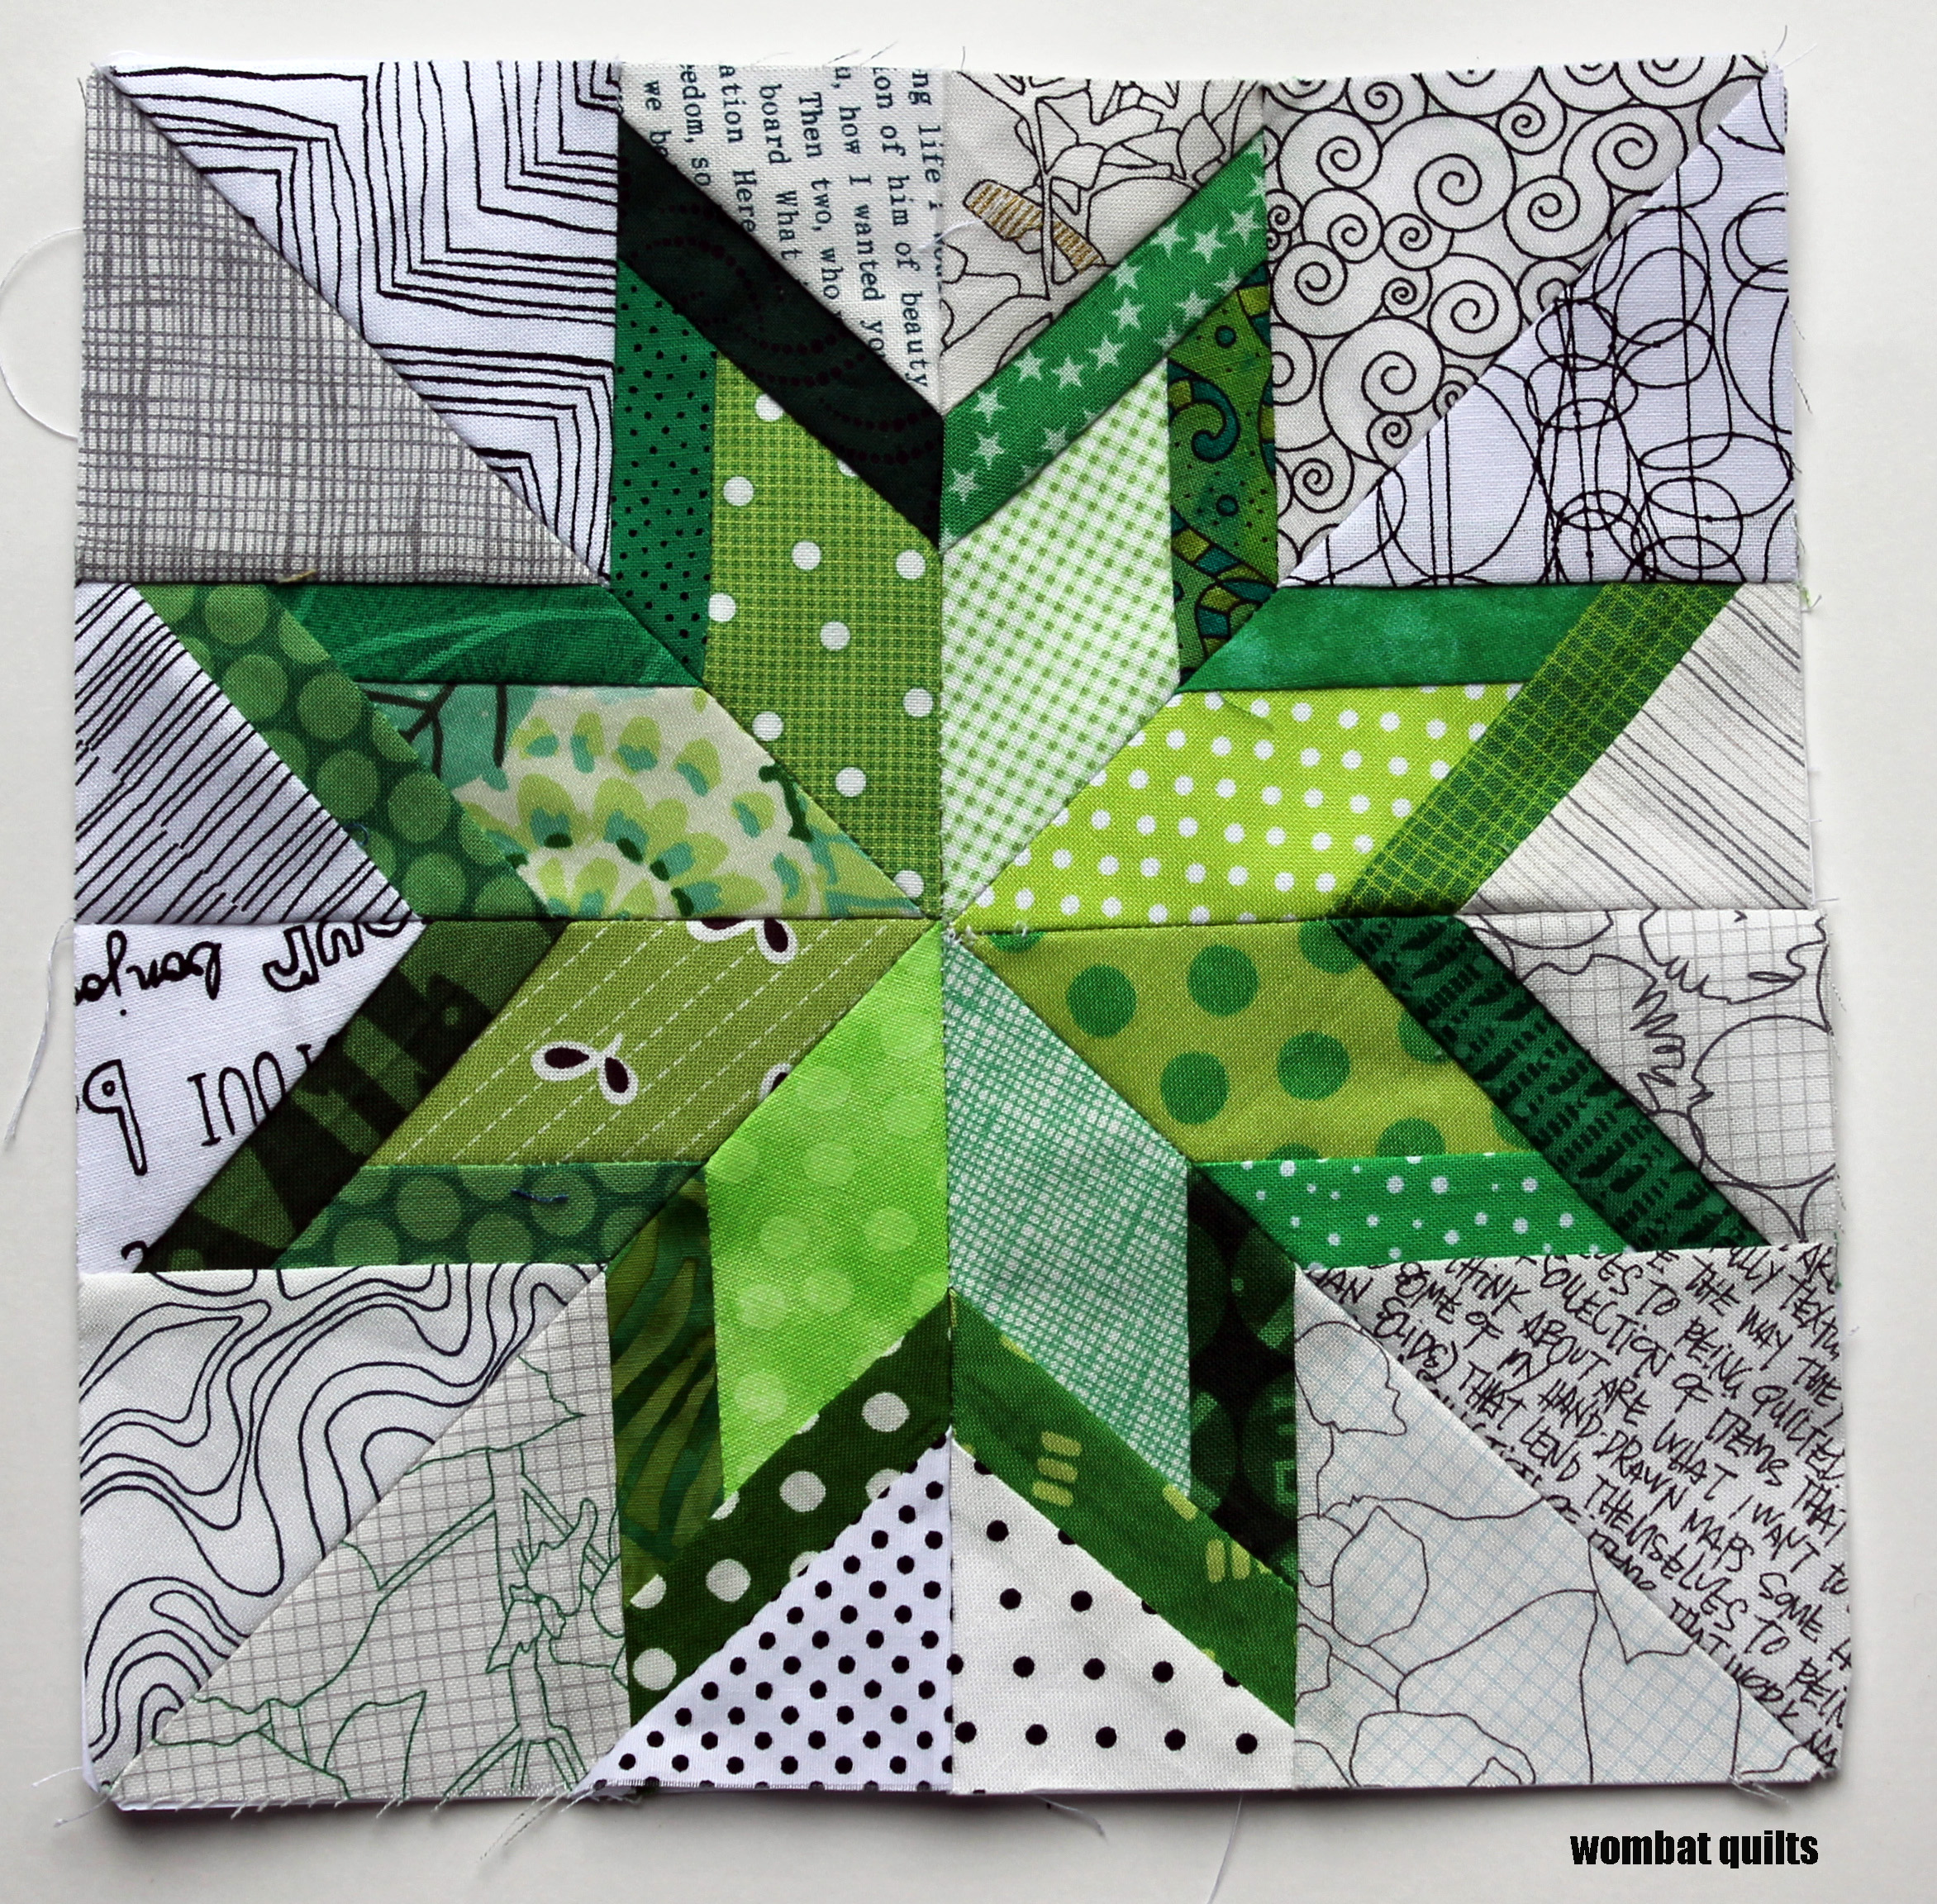 Free Paper Piecing Patterns Quilt Blocks : 8 inch stars? a new paper piecing adventure WOMBAT QUILTS